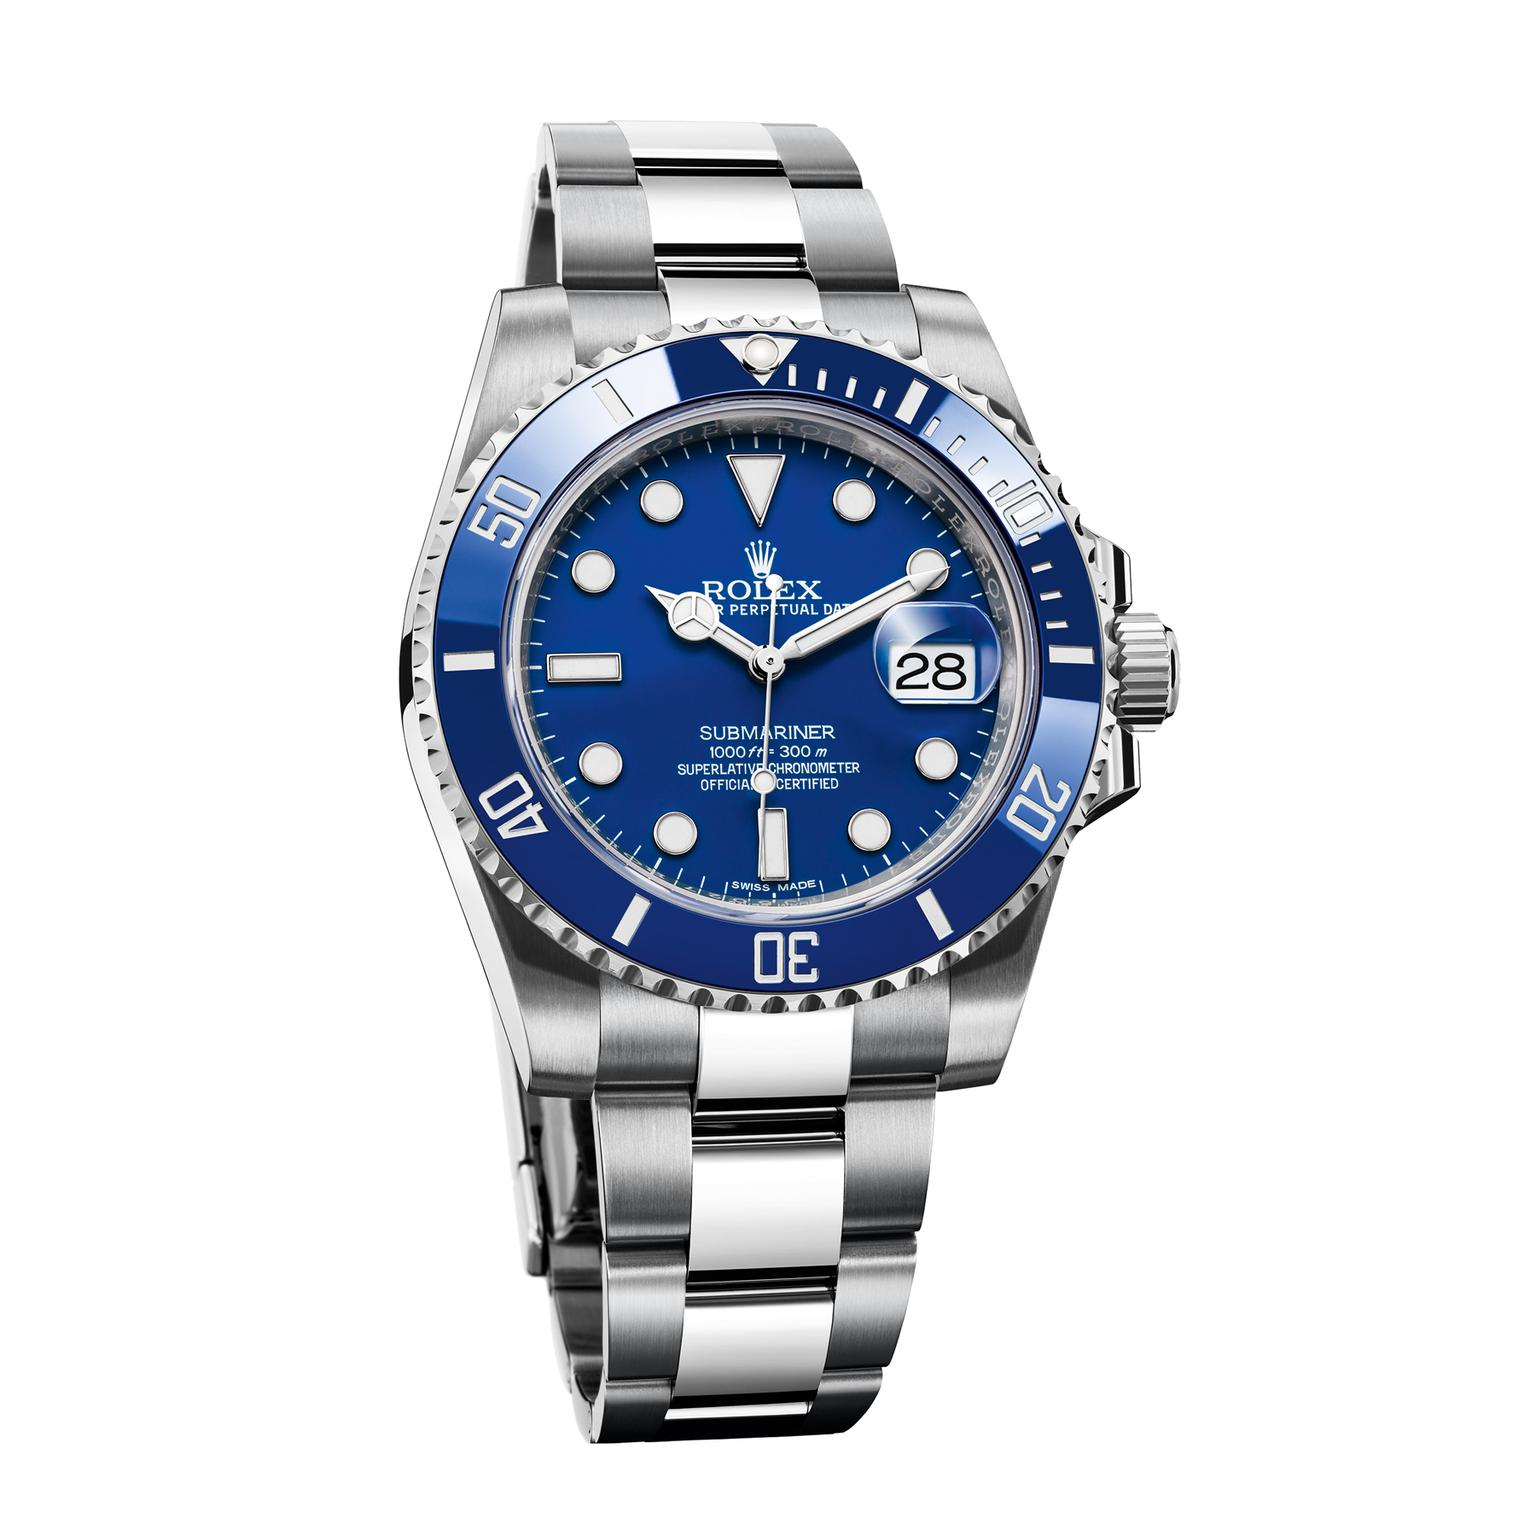 rolex_submariner_40mm_white_gold_.jpg__1536x0_q75_crop-scale_subsampling-2_upscale-false.jpg